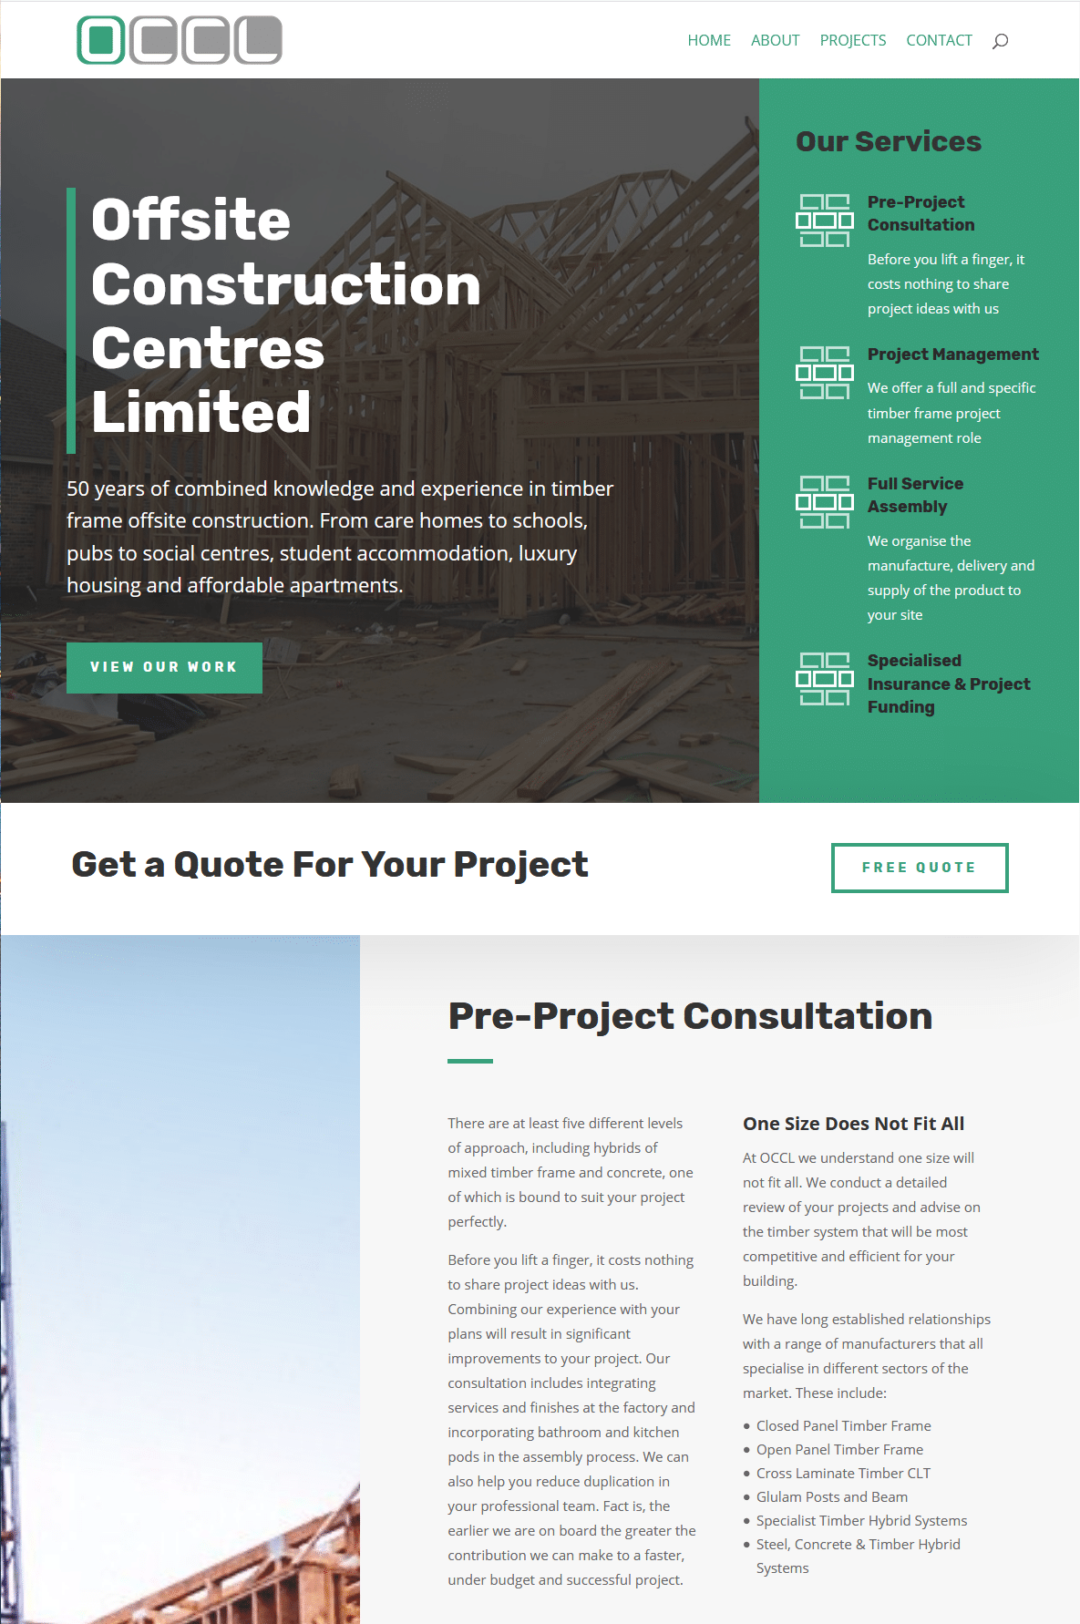 Offsite Construction Centres Limited